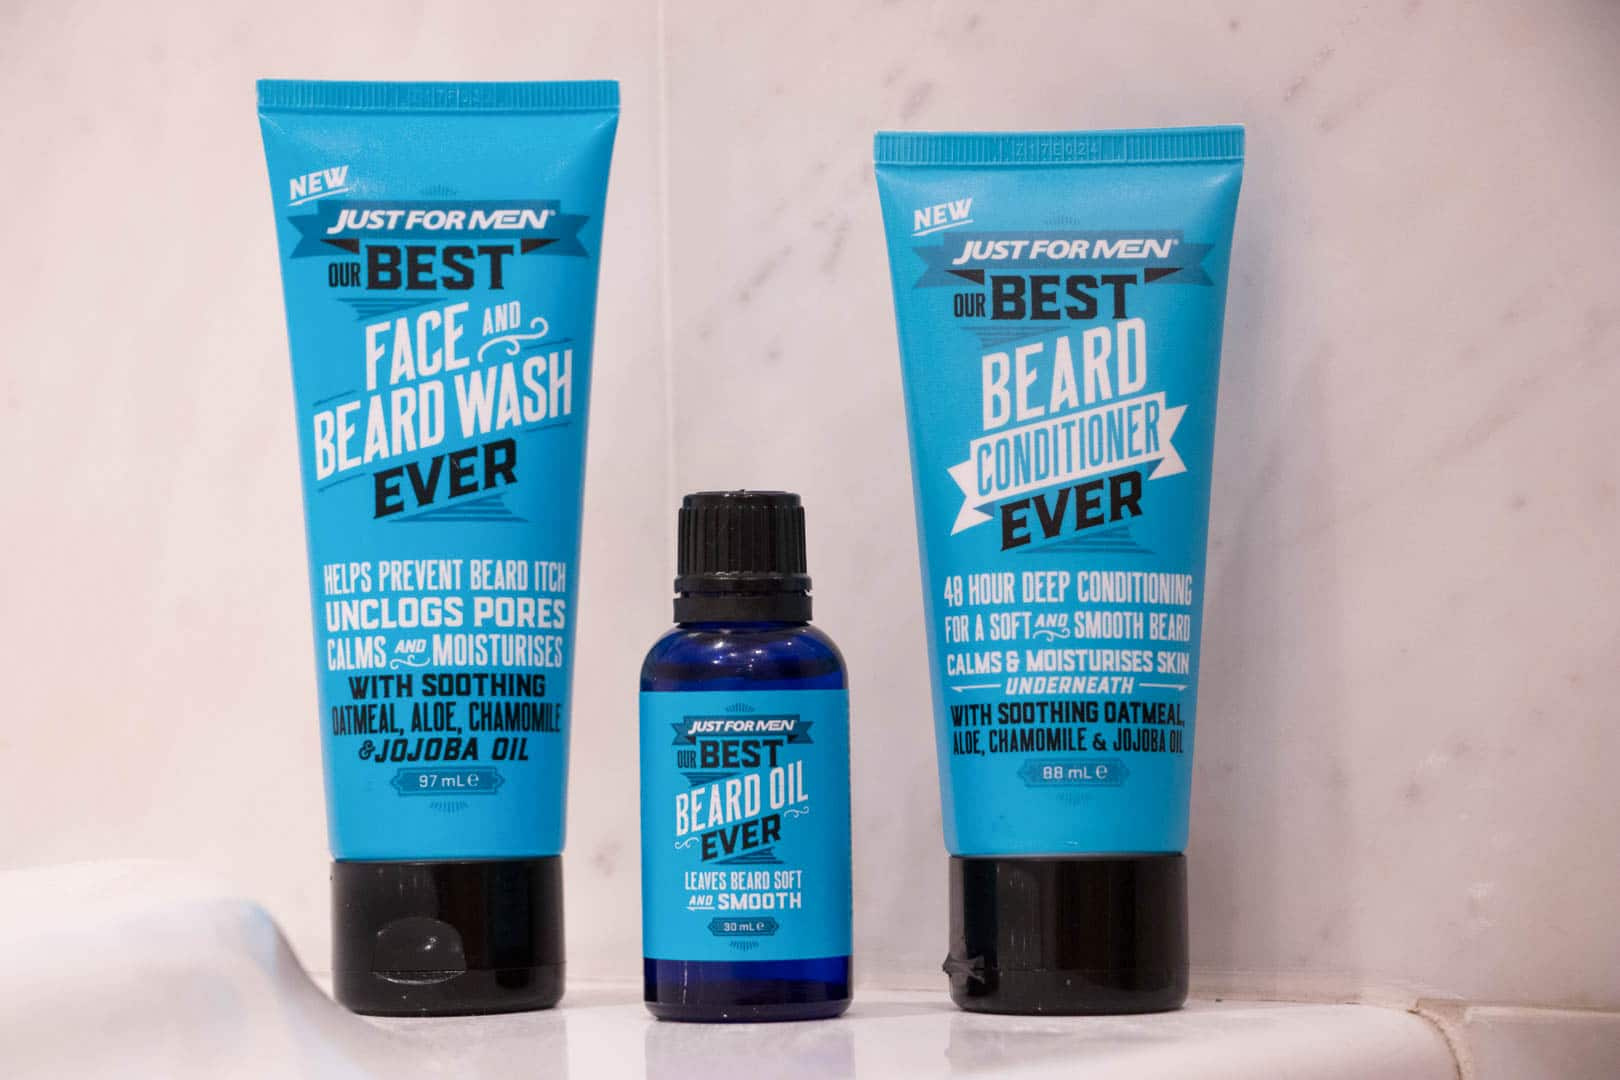 face and beard wash ever